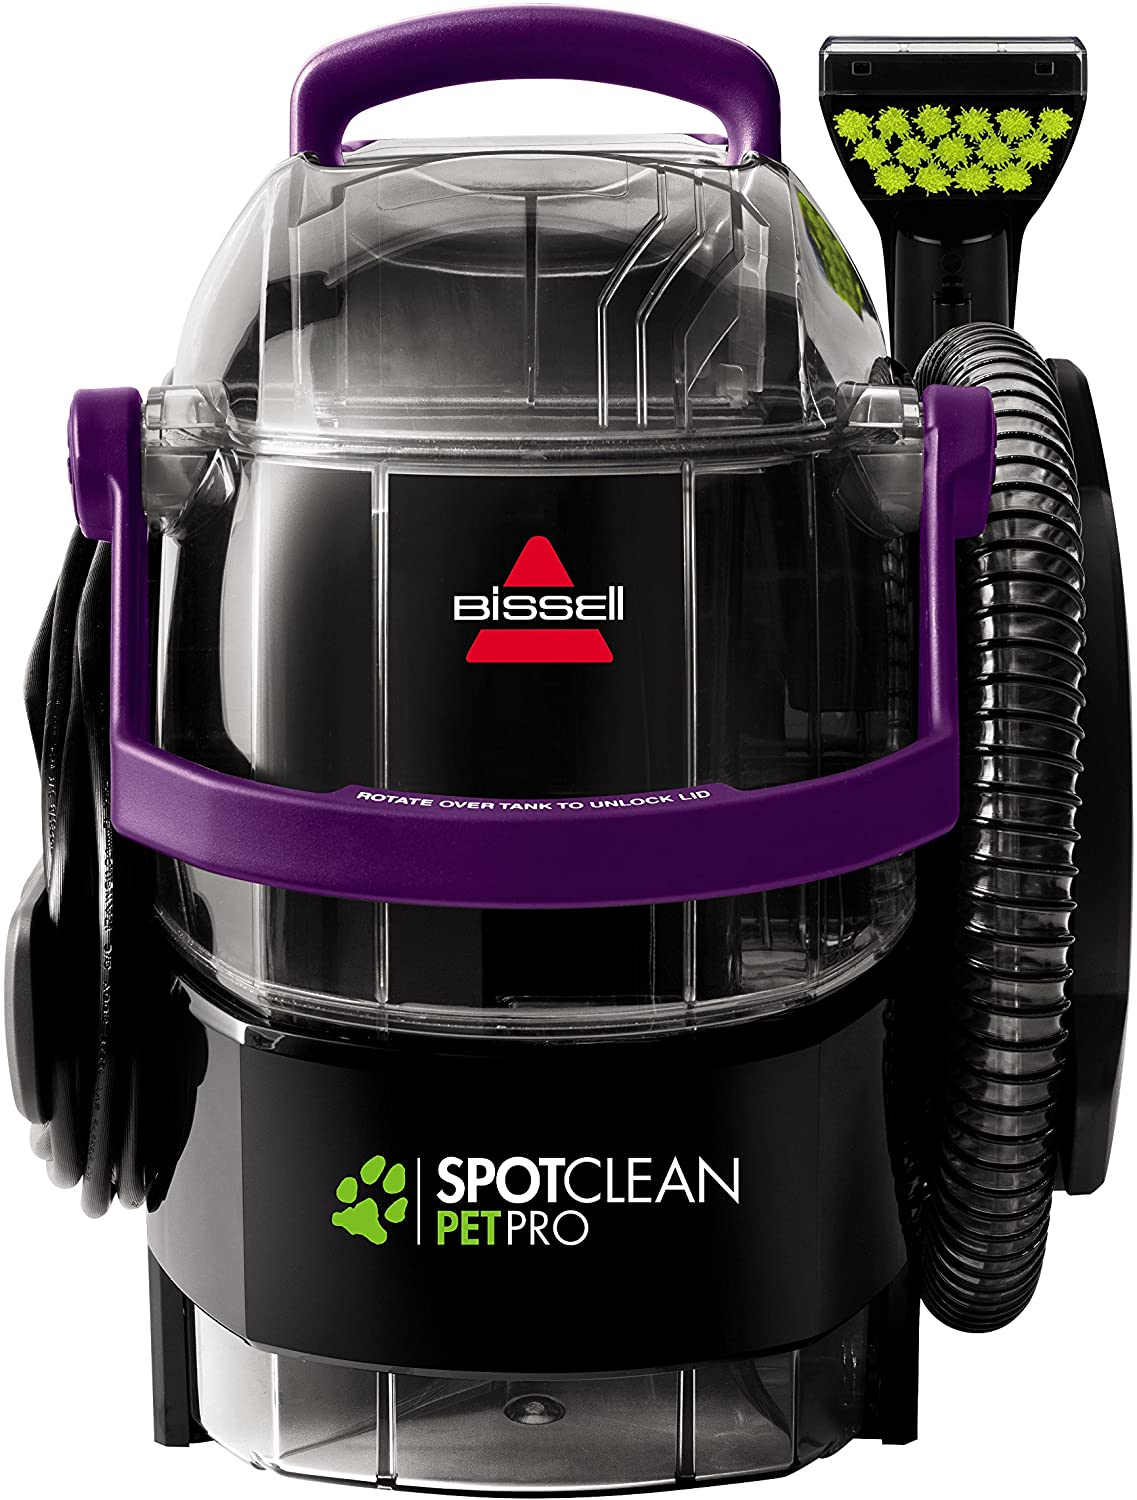 BISSELL SpotClean Pet Pro Portable Upholstery Cleaner